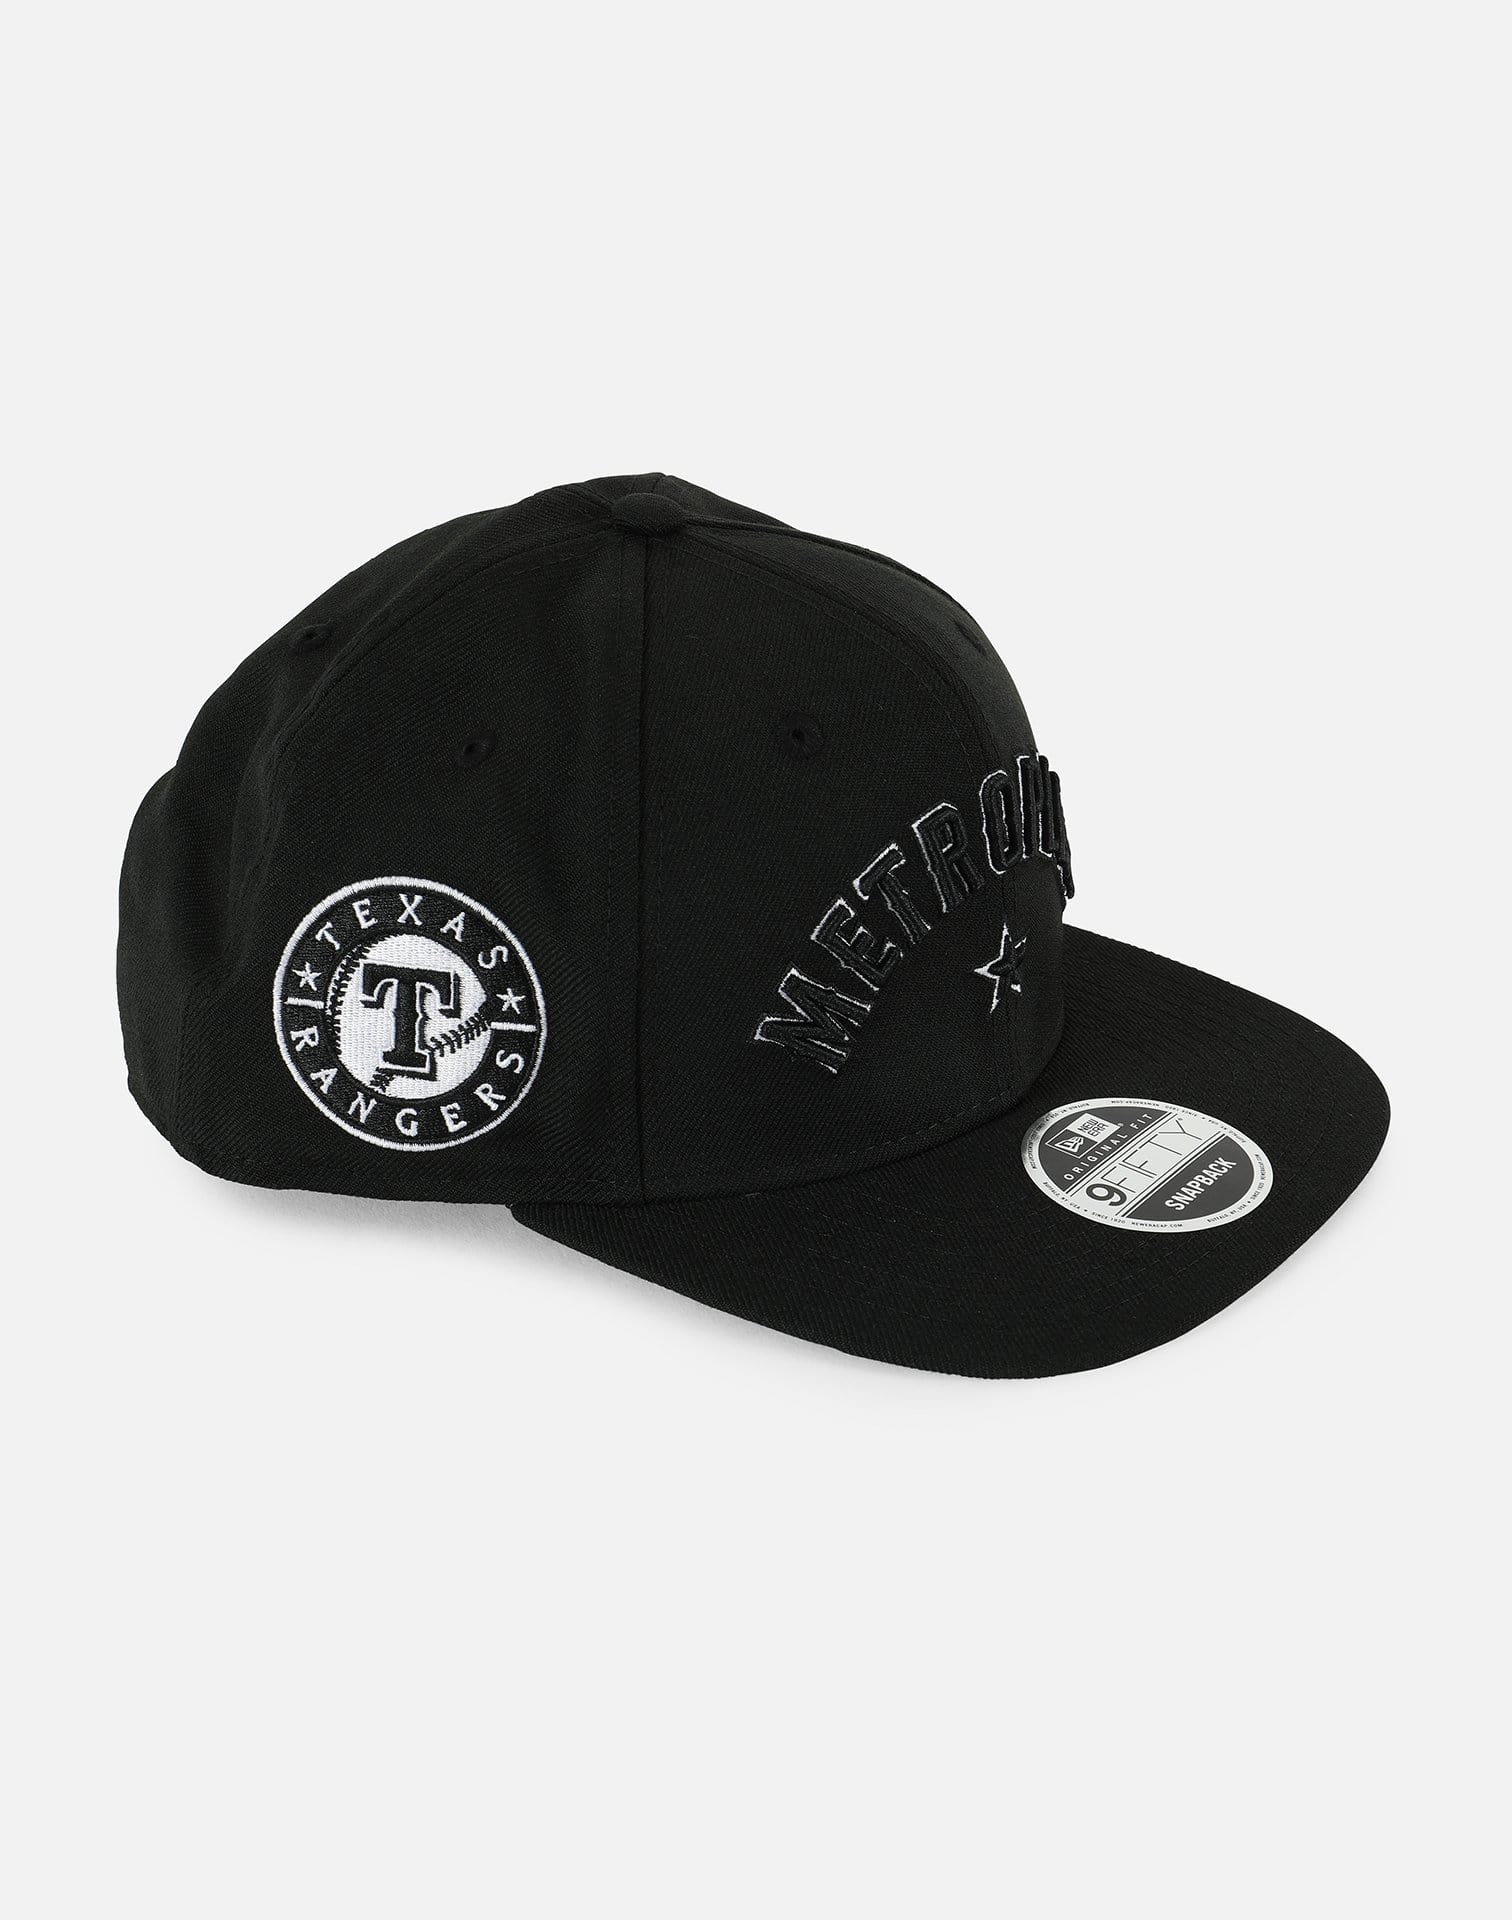 New Era MLB Texas Rangers Metroplex 019 Snapback Hat